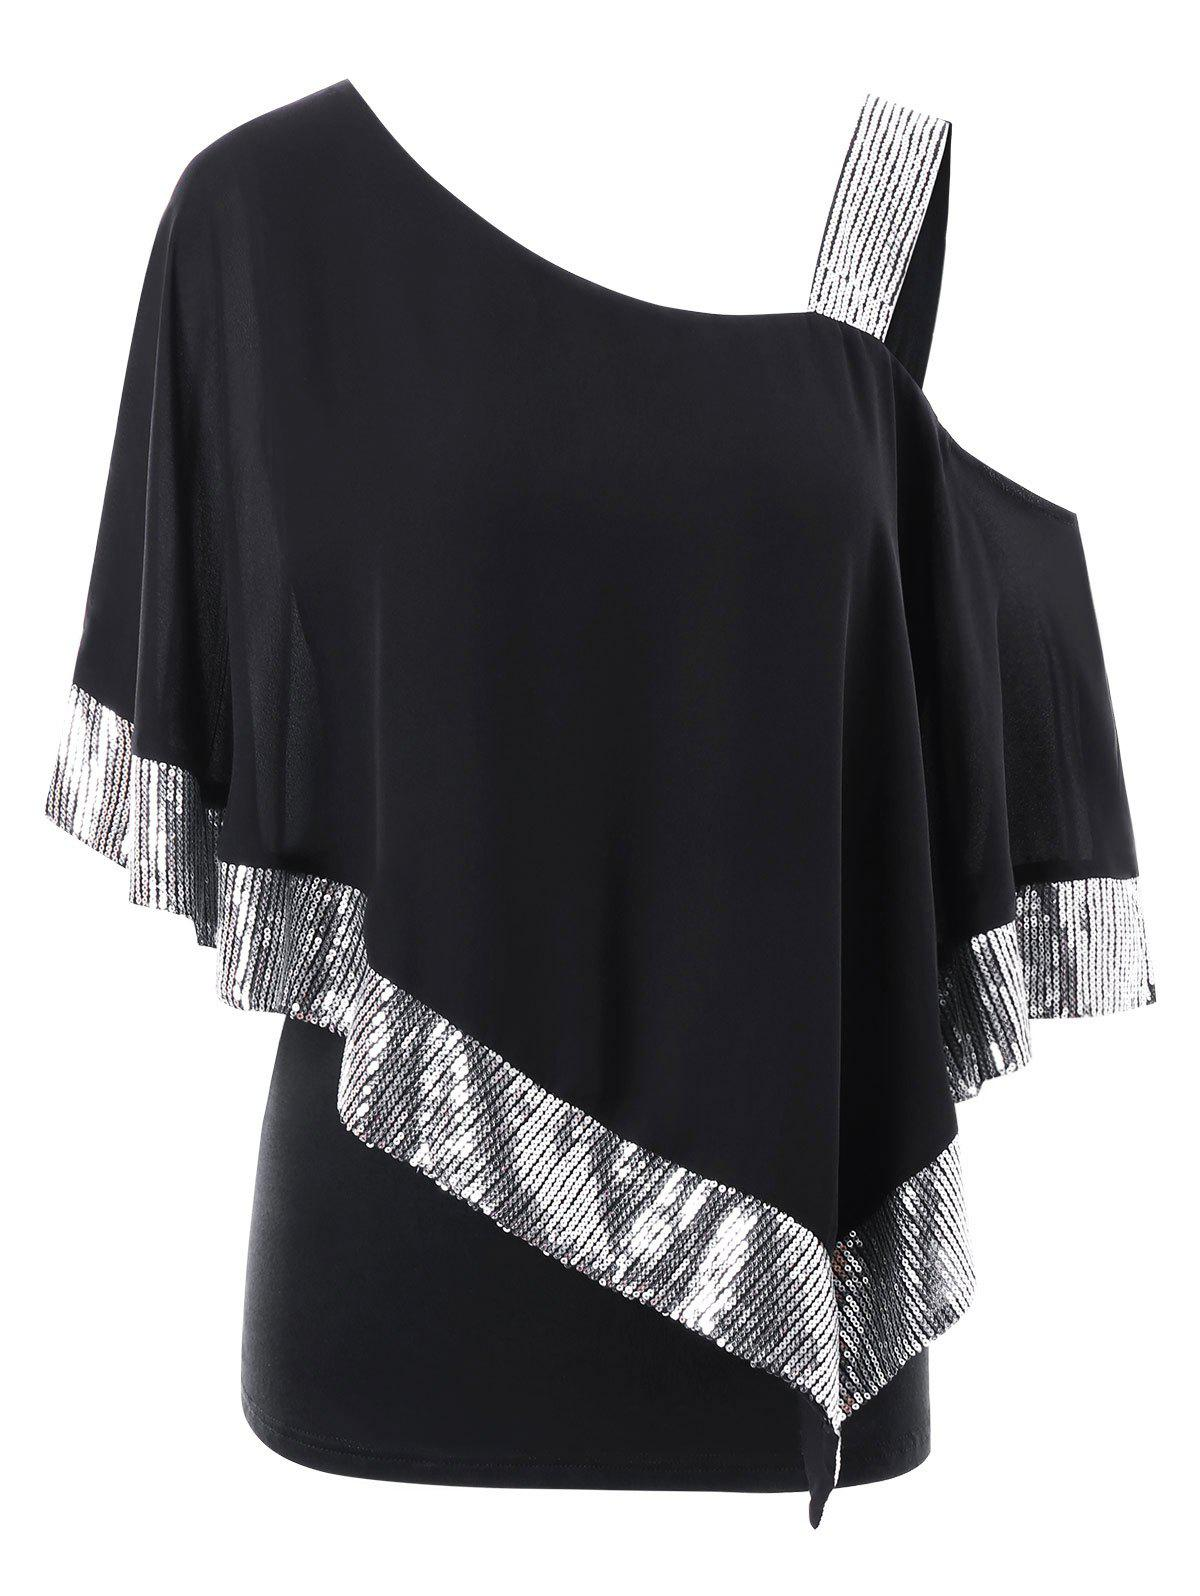 Fashion Plus Size Skew Collar Glittery Overlay T-shirt